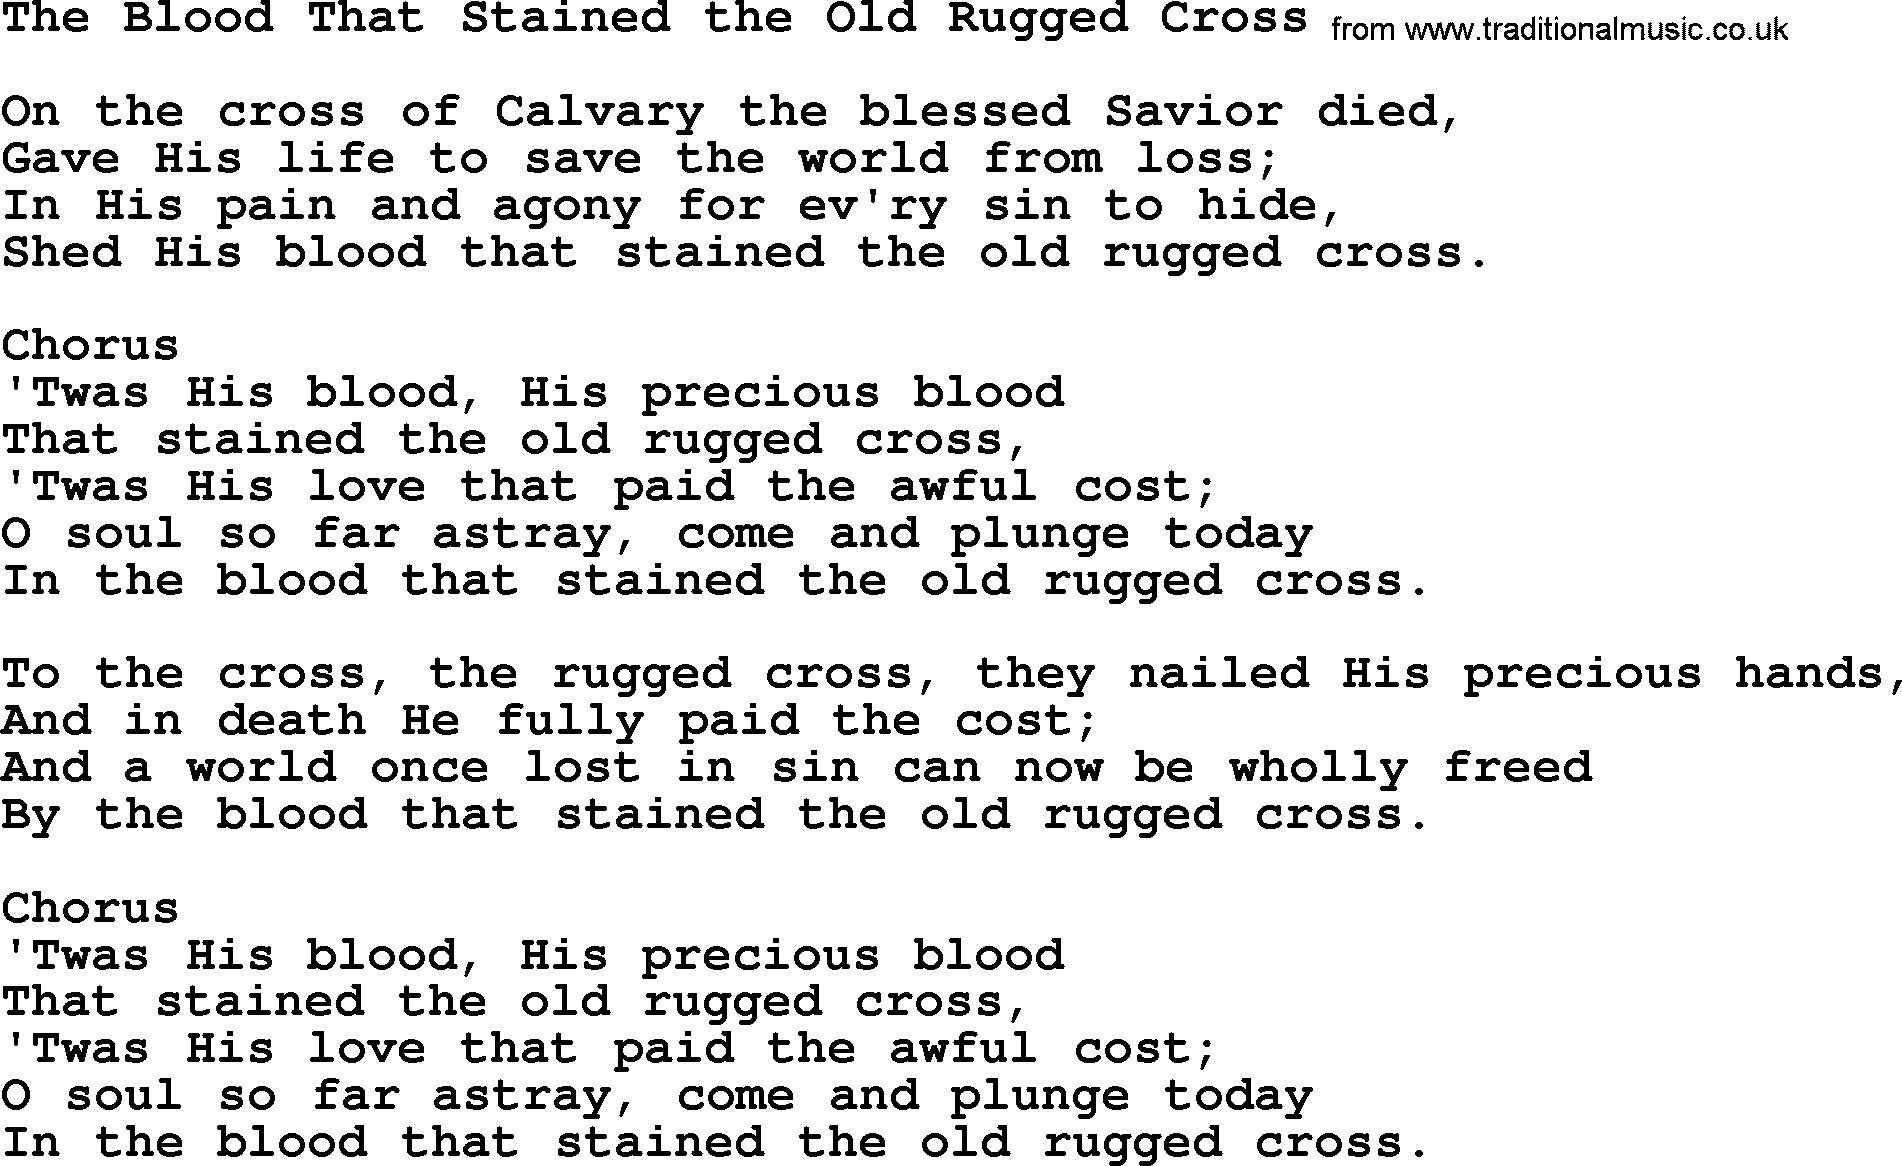 Baptist Hymnal Hymn: The Blood That Stained The Old Rugged Cross, Lyrics  With Pdf